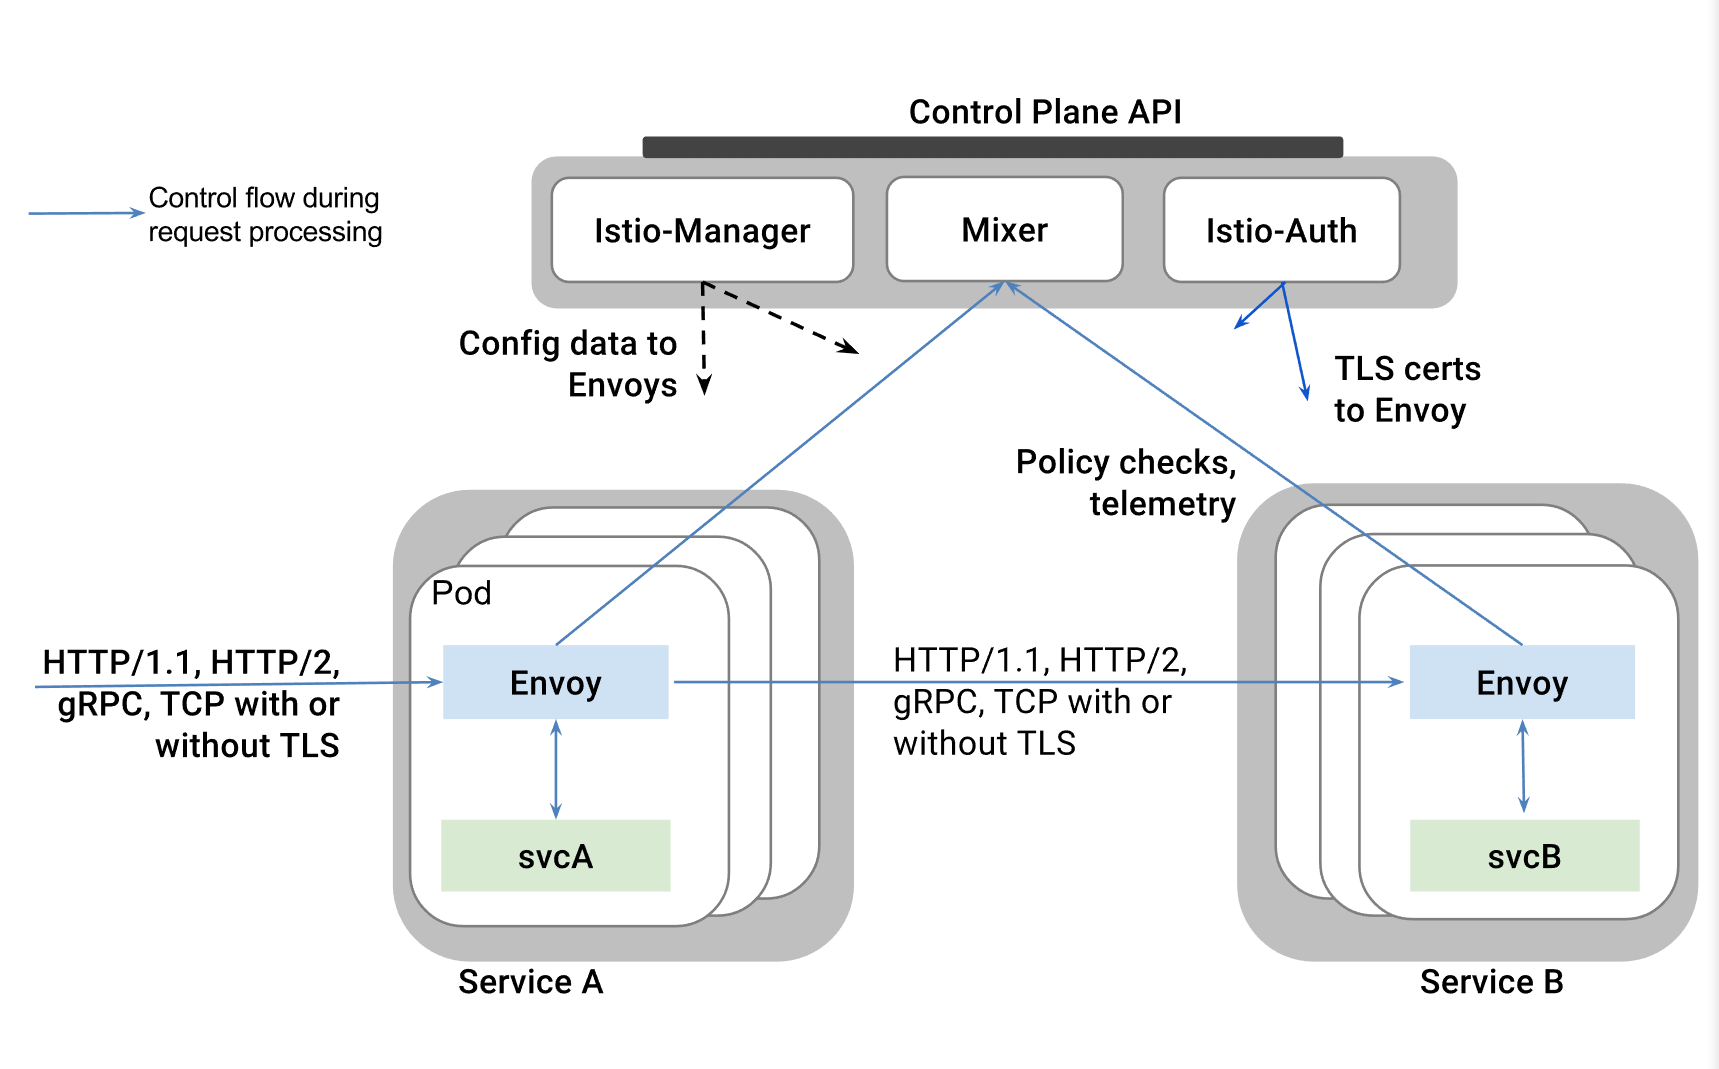 Google Ibm And Lyft Launch Istio An Open Source Platform For Netflix Wiring Diagram Essentially Provides Developers With A Single Service Mesh That The Monitoring Services To Then Implement Necessary Load Balancing